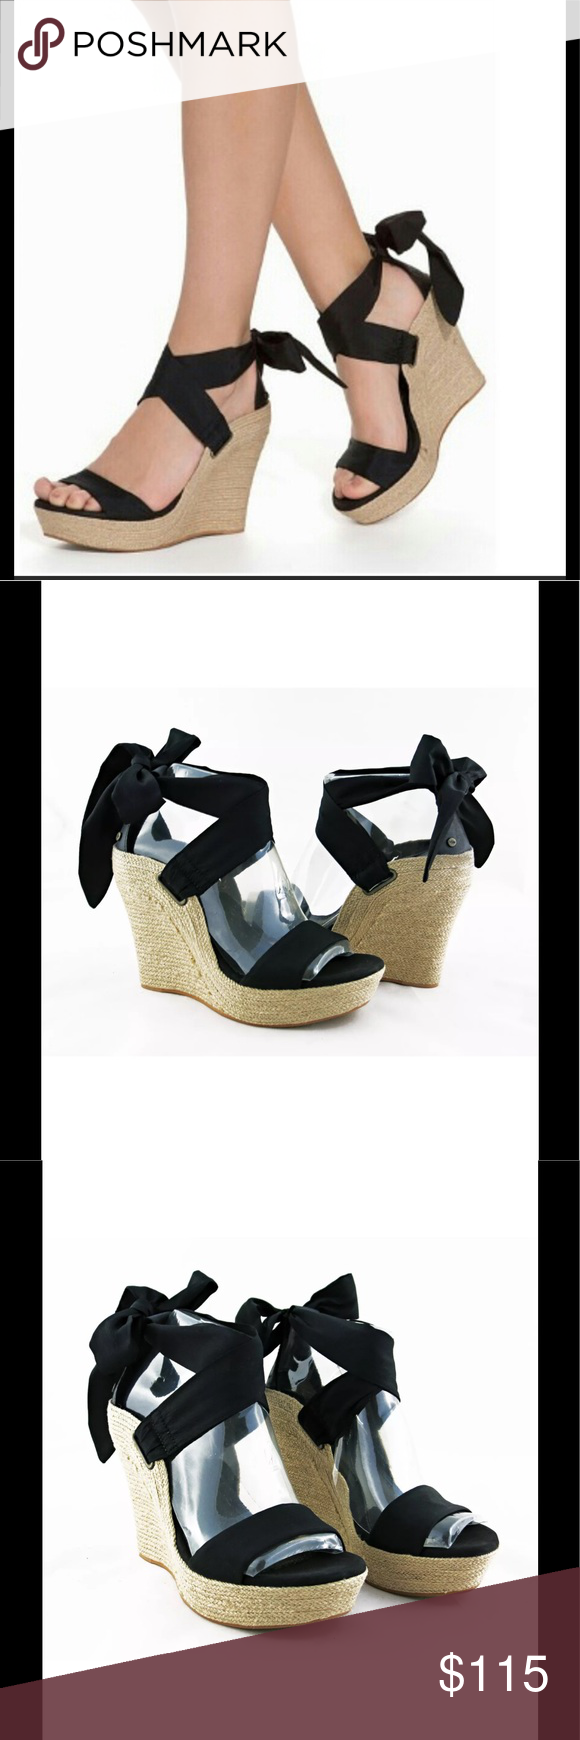 01eb8e2d6b3 Ugg Jules black ankle wrap espadrille wedges 8.5 Silk ribbon ankle wrap  with a Leather lined